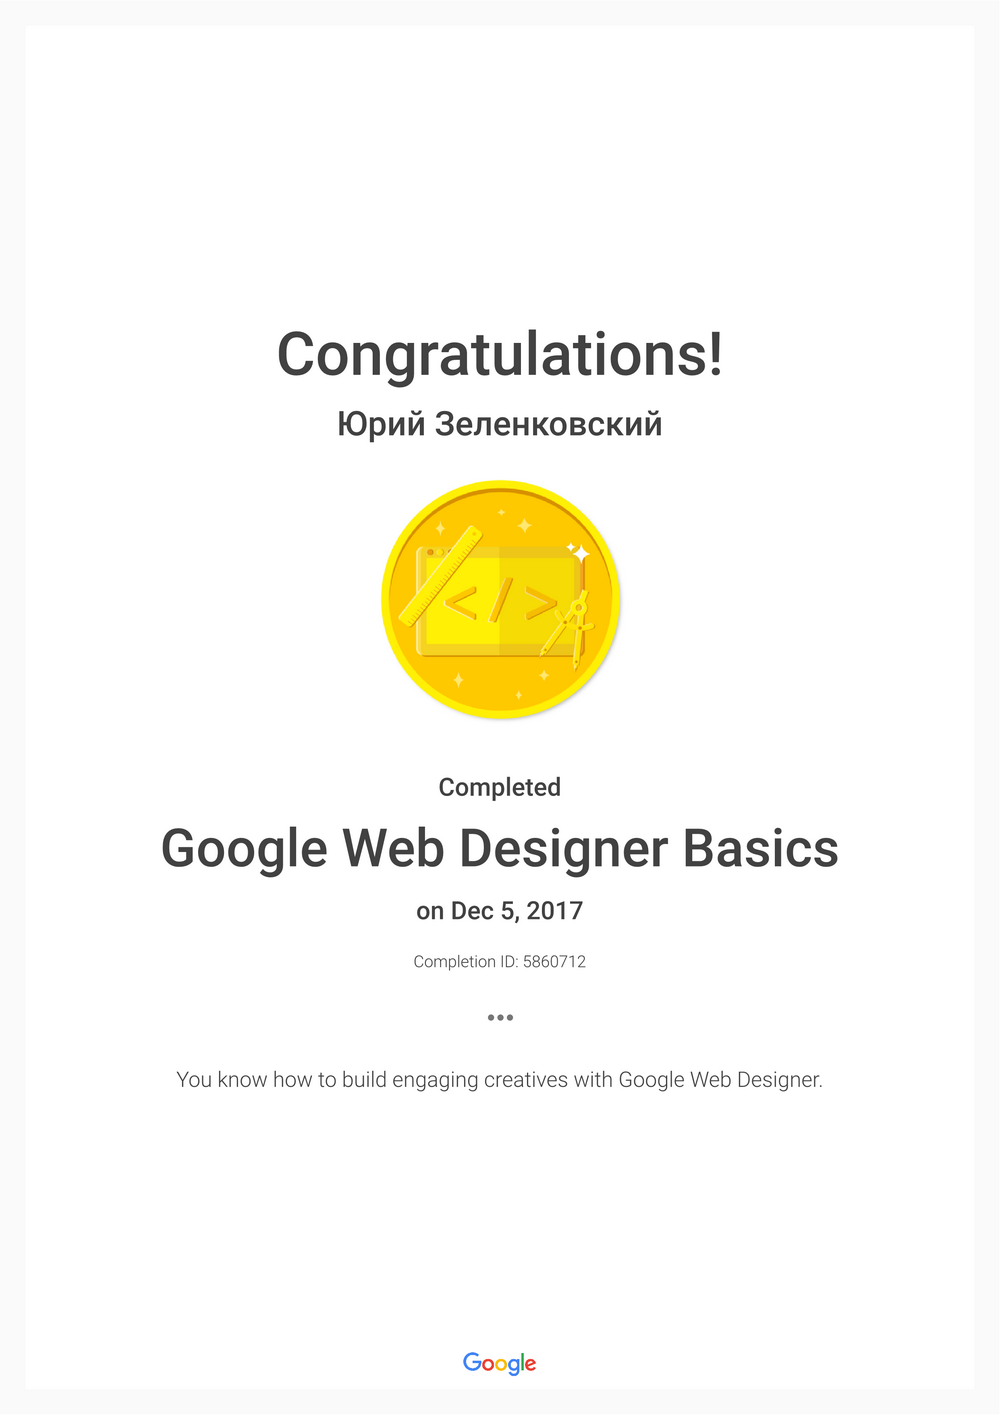 Сертификат по Google Web Designer Academy for Ads